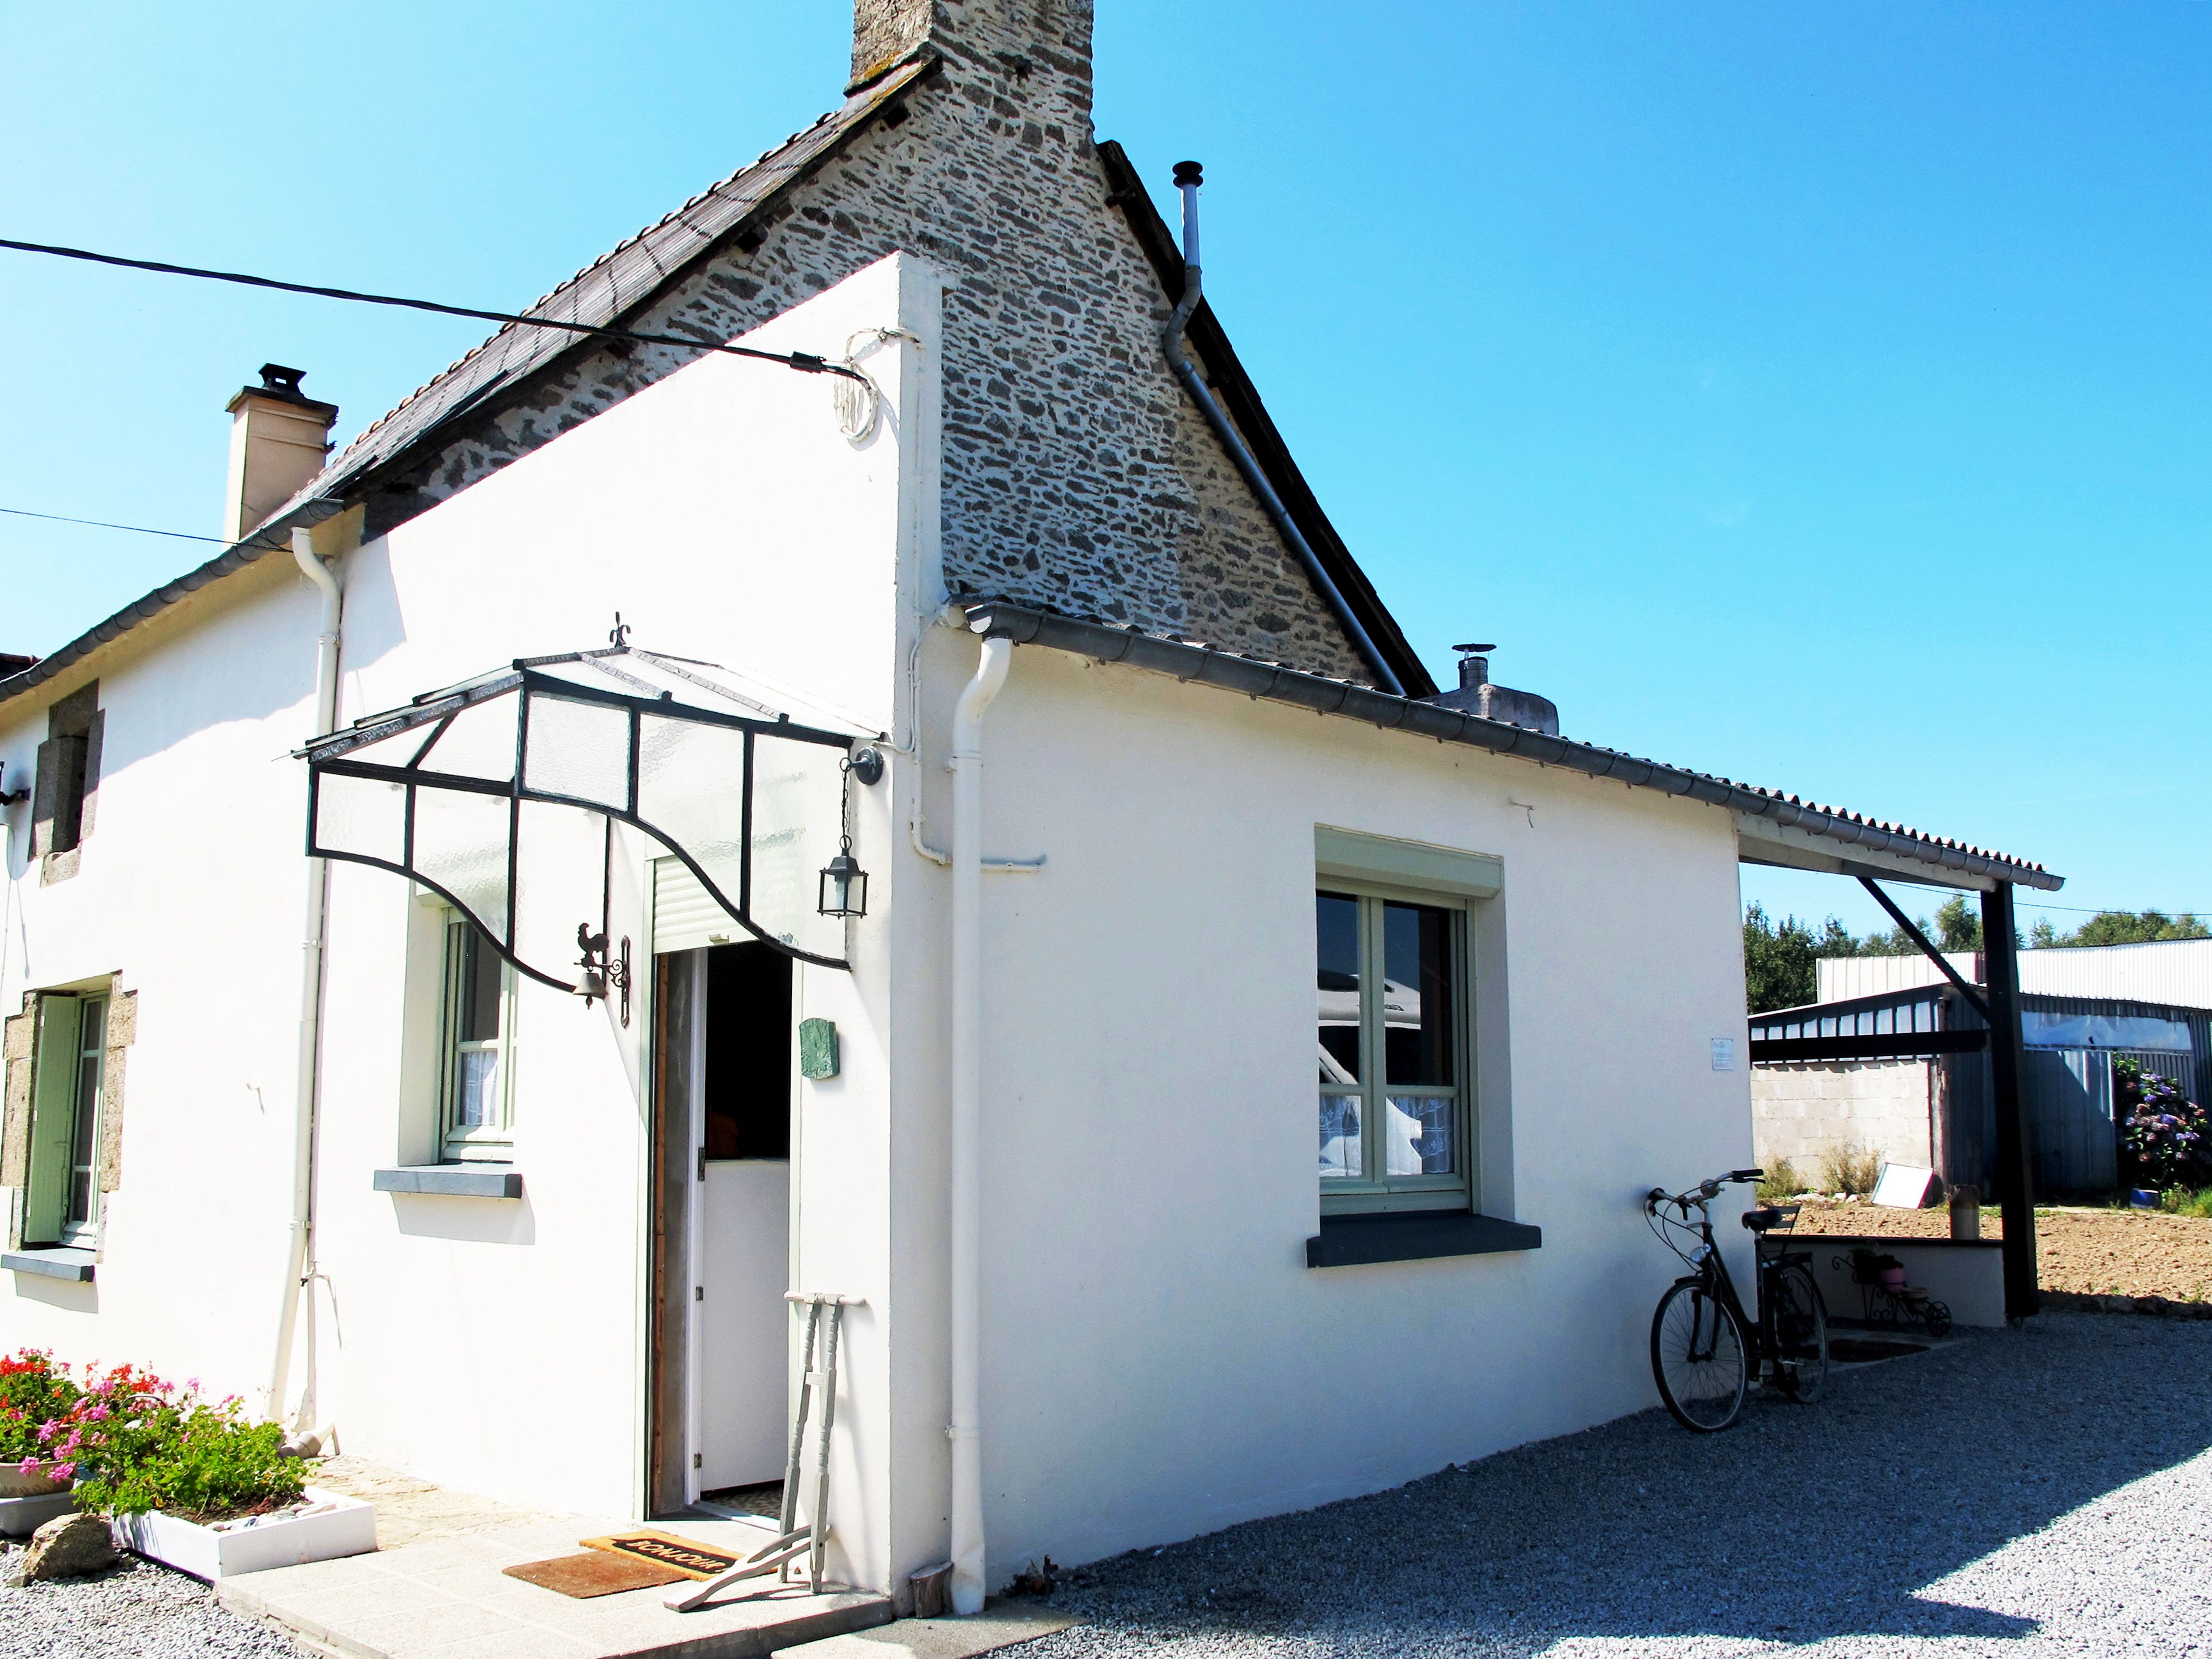 96 850 House In Meneac Impeccably Renovated 2 Bedroom Cottage High Ceilings Traditional Features And A Gorgeous Garden Bargain Forsale Reales Morbihan